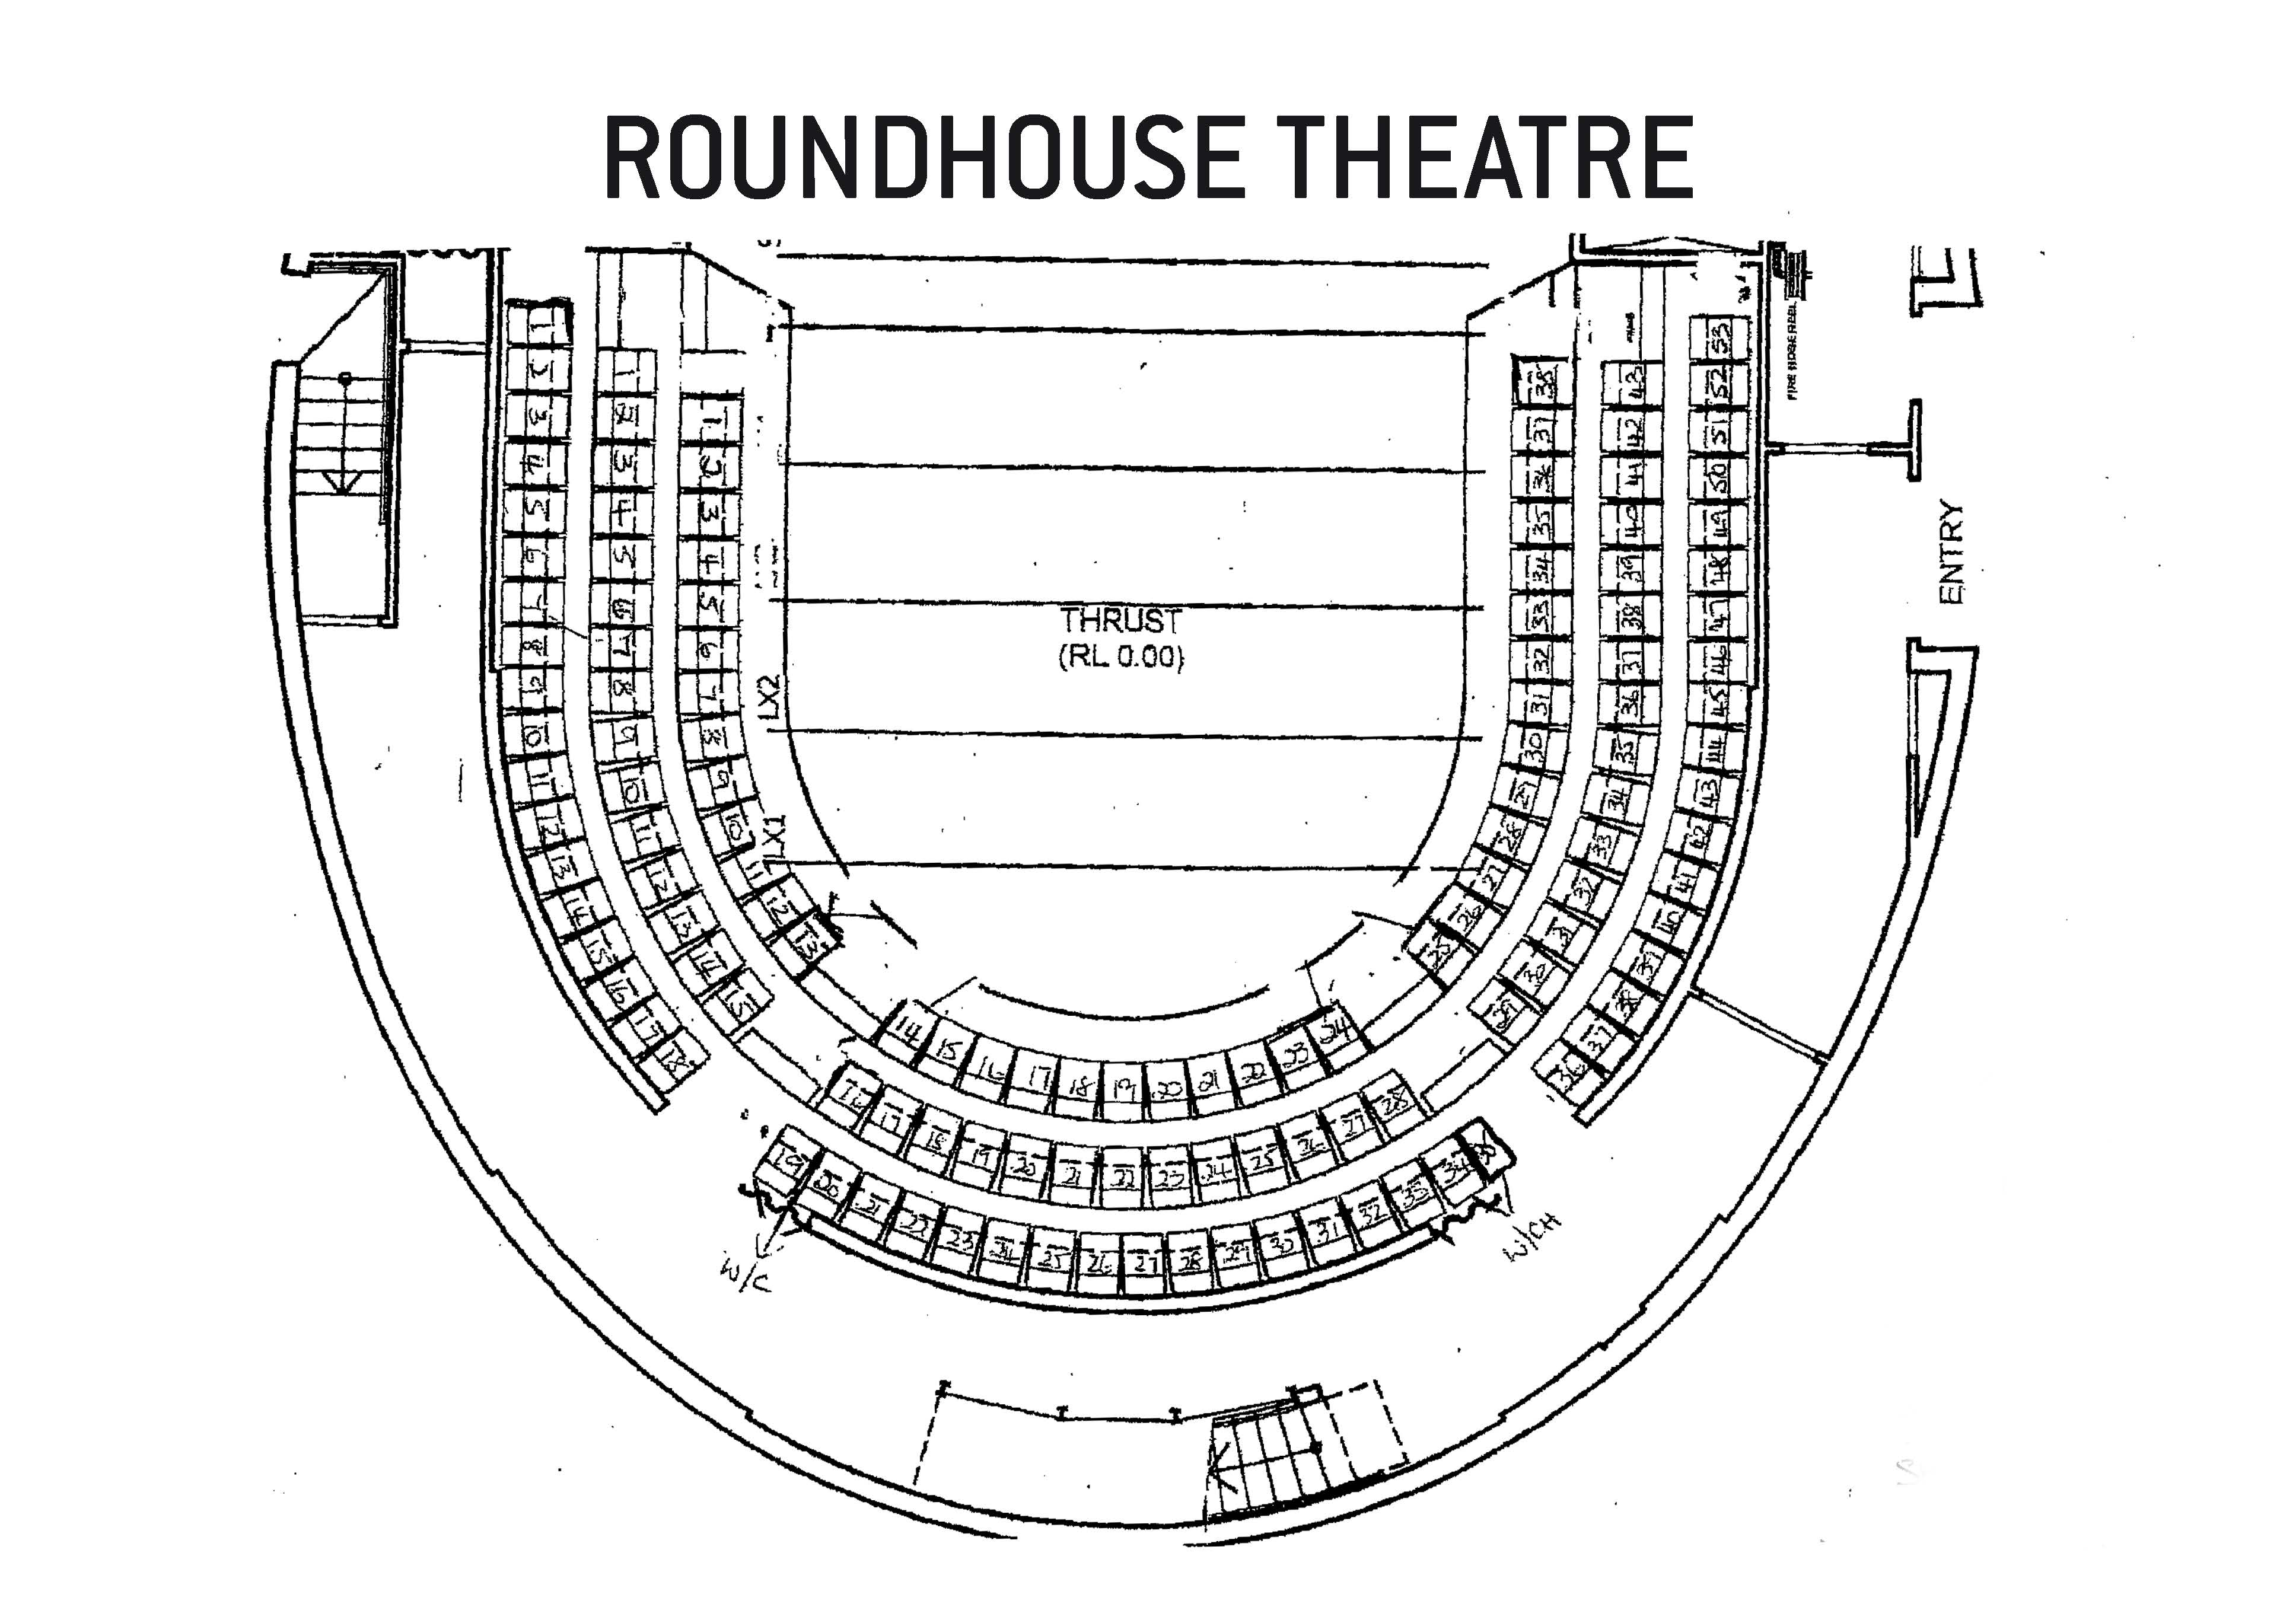 roundhouse theatre seating plan